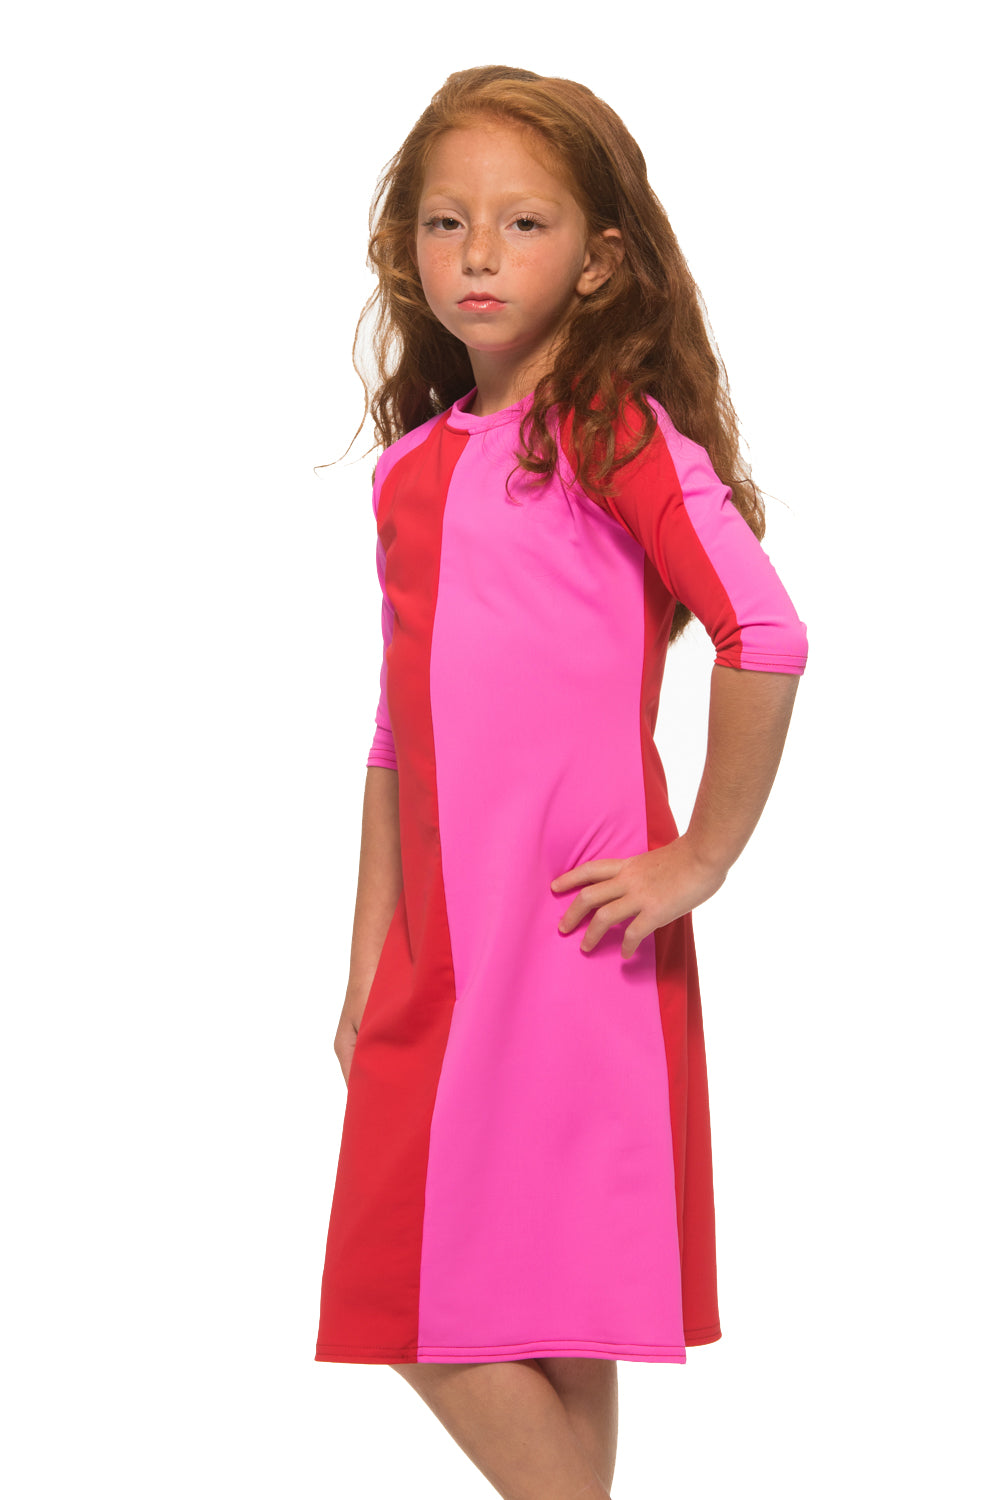 Kids Red & Pink Half & Half Dress